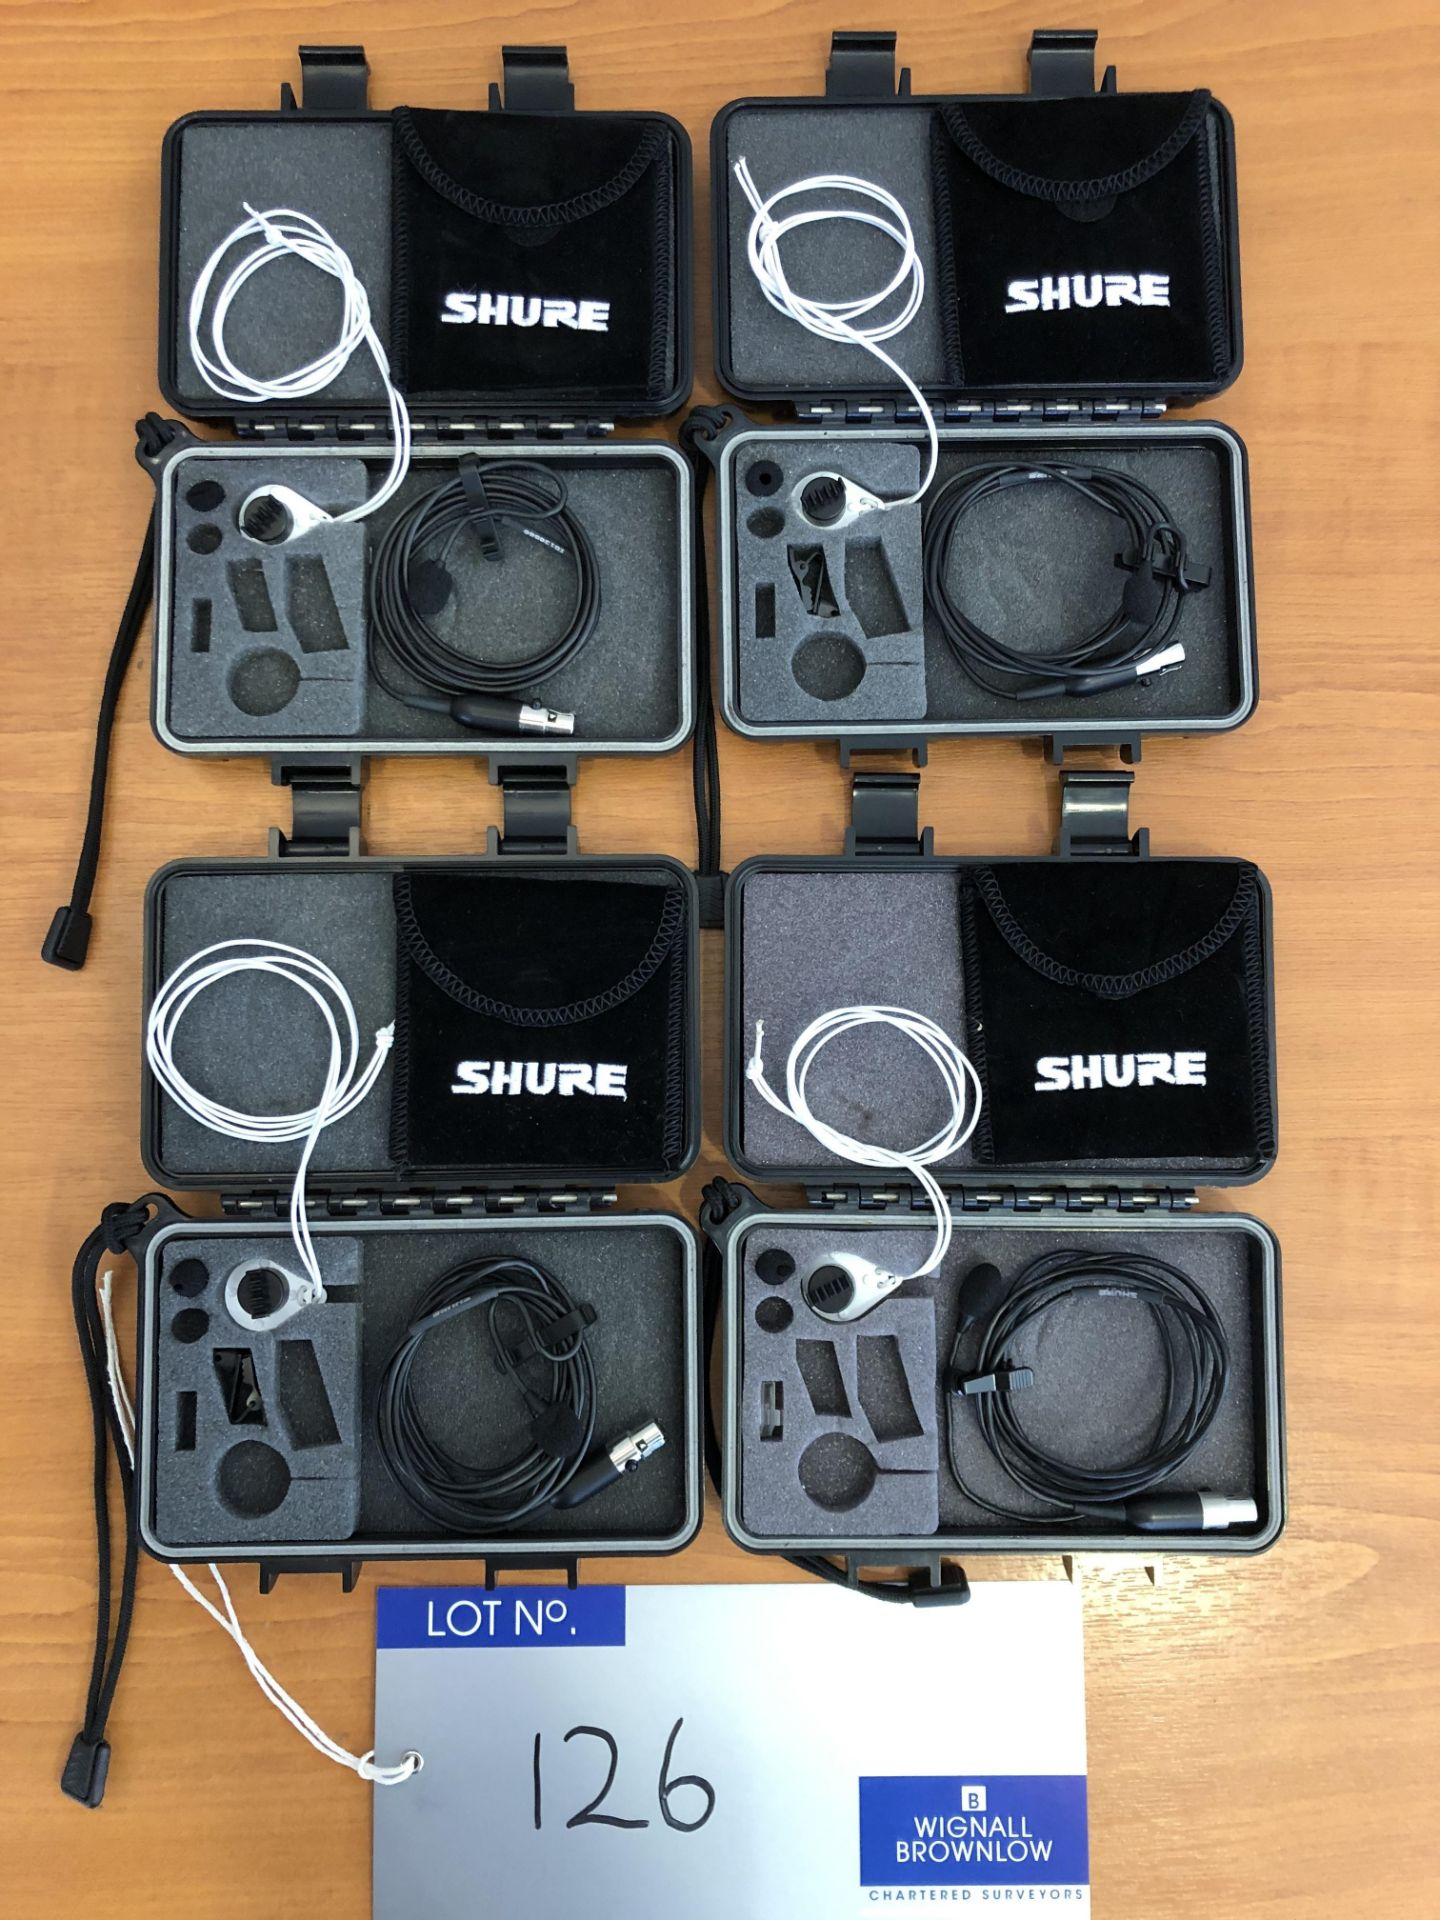 4 Shure WL51 Cardioid Lavalier Microphones to TA-4F, boxed with pouches, tested-located at Chaps